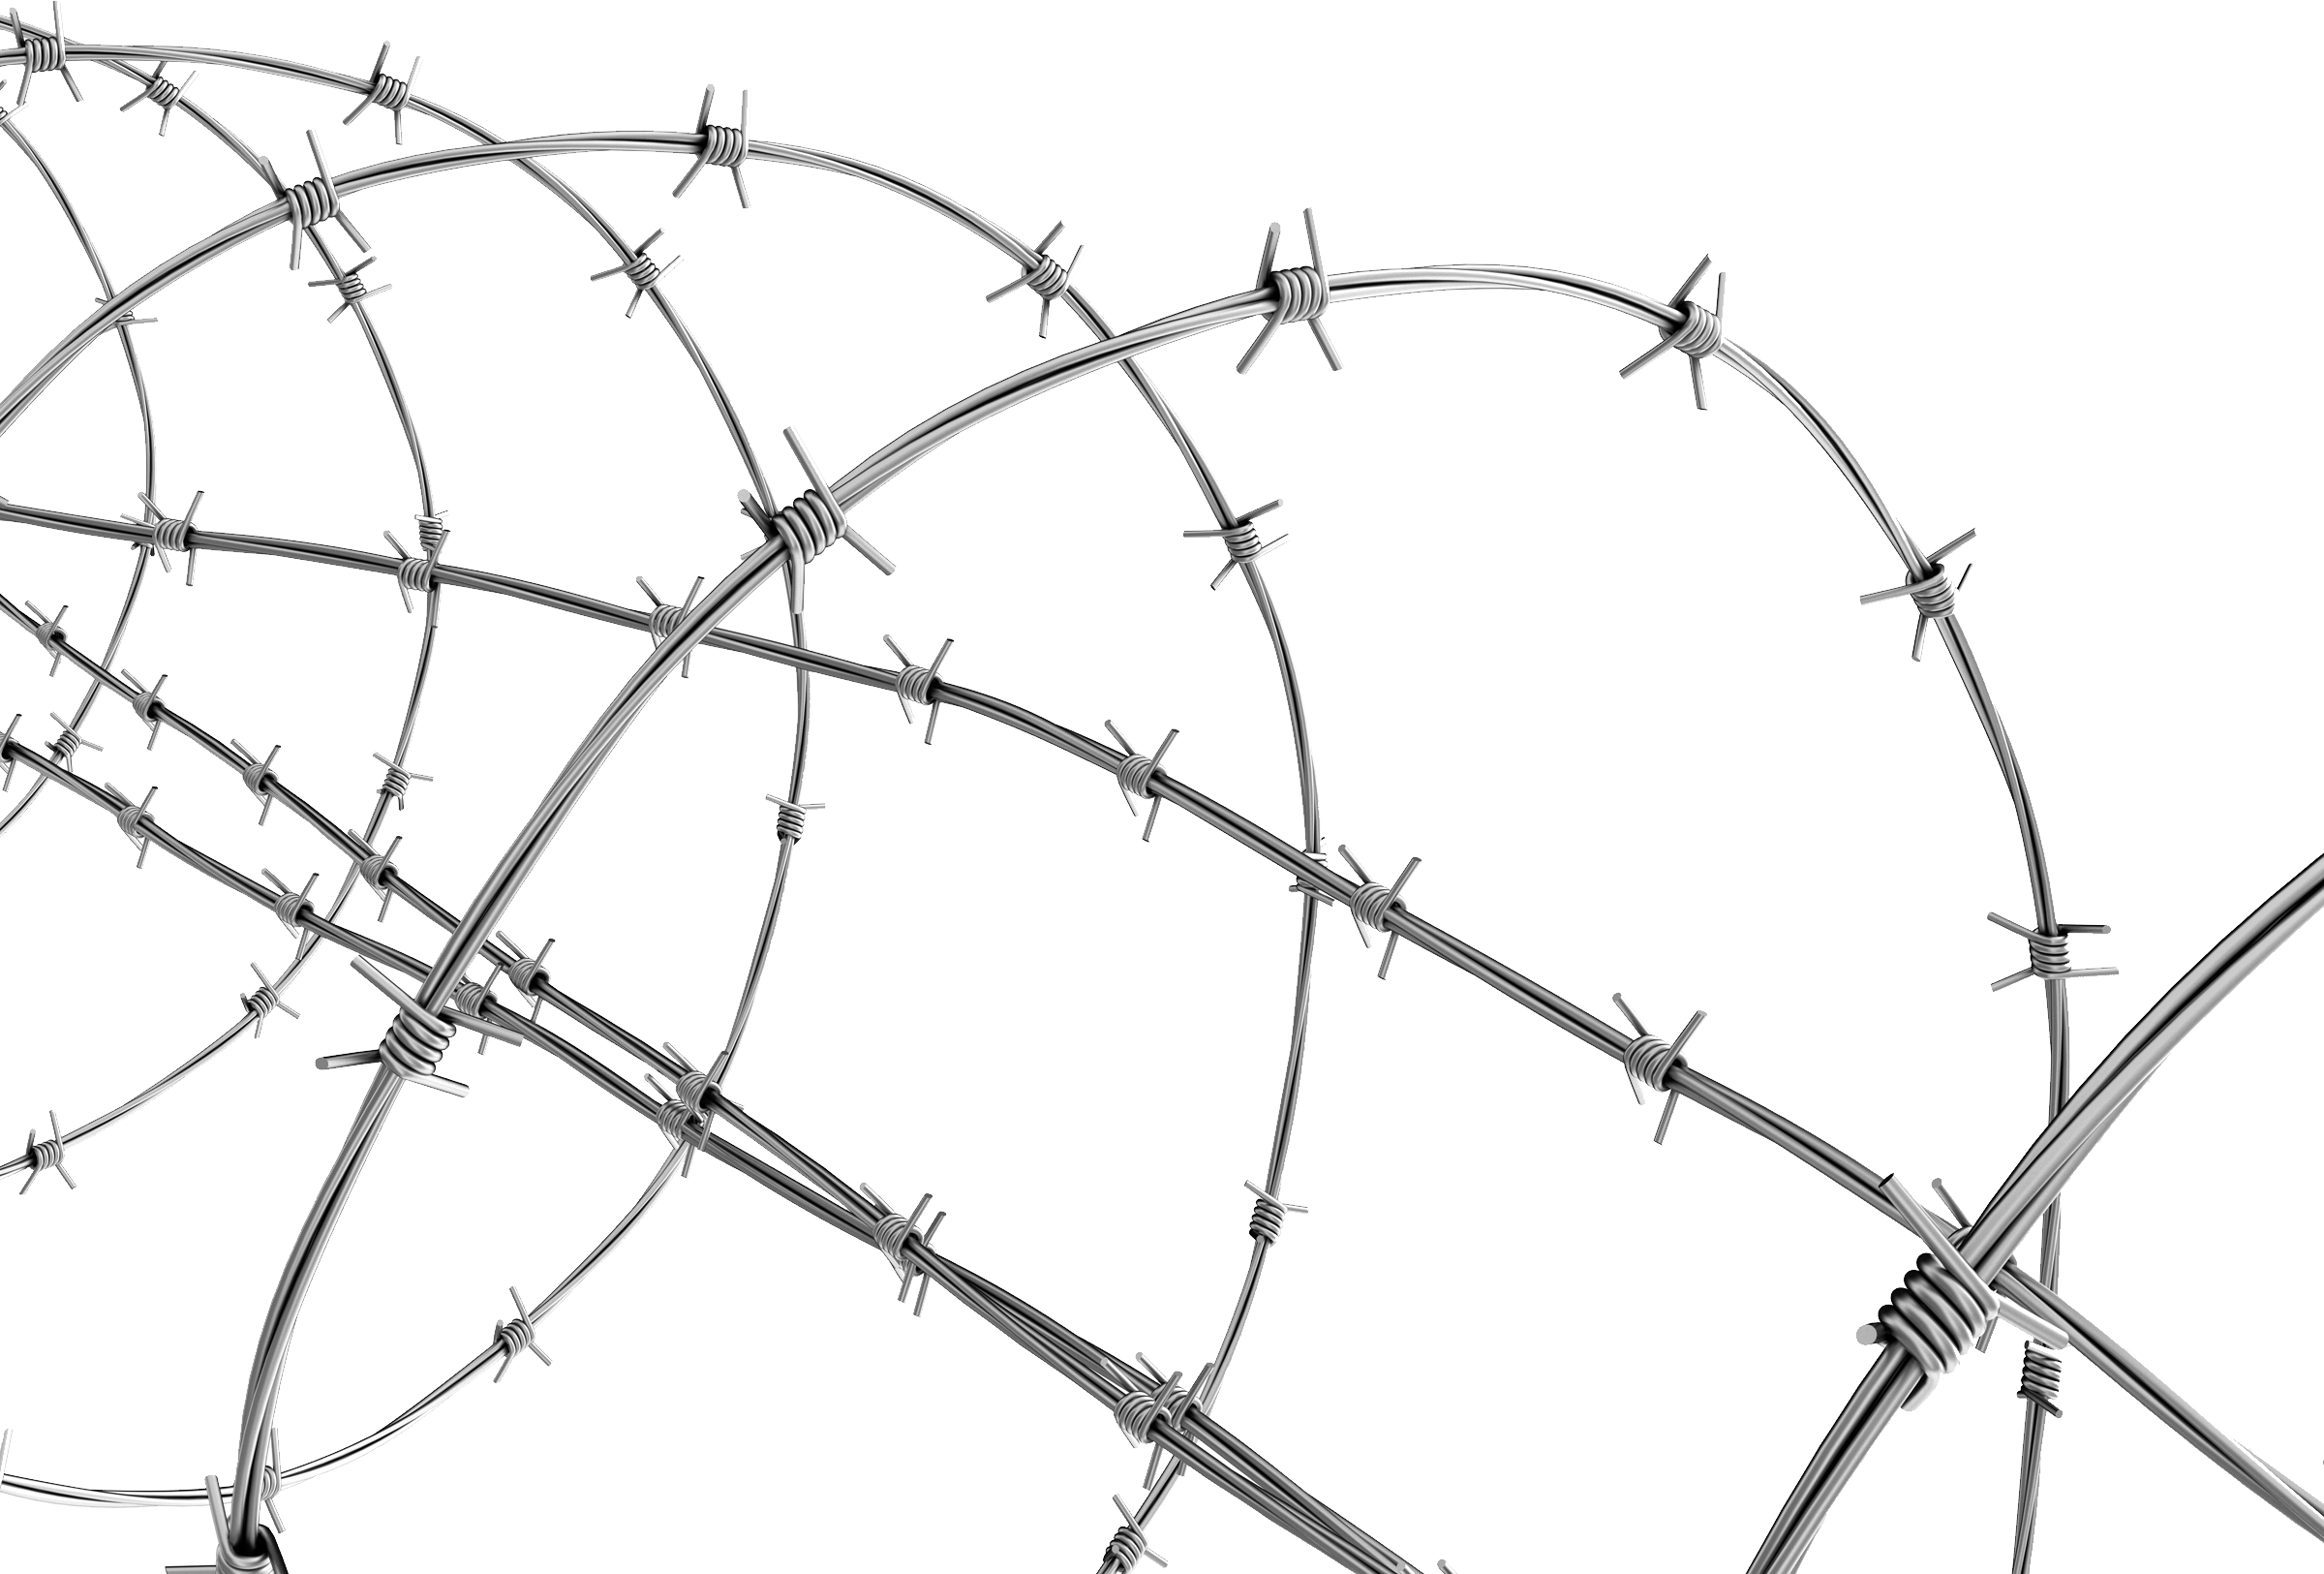 Barbwire PNG images free download